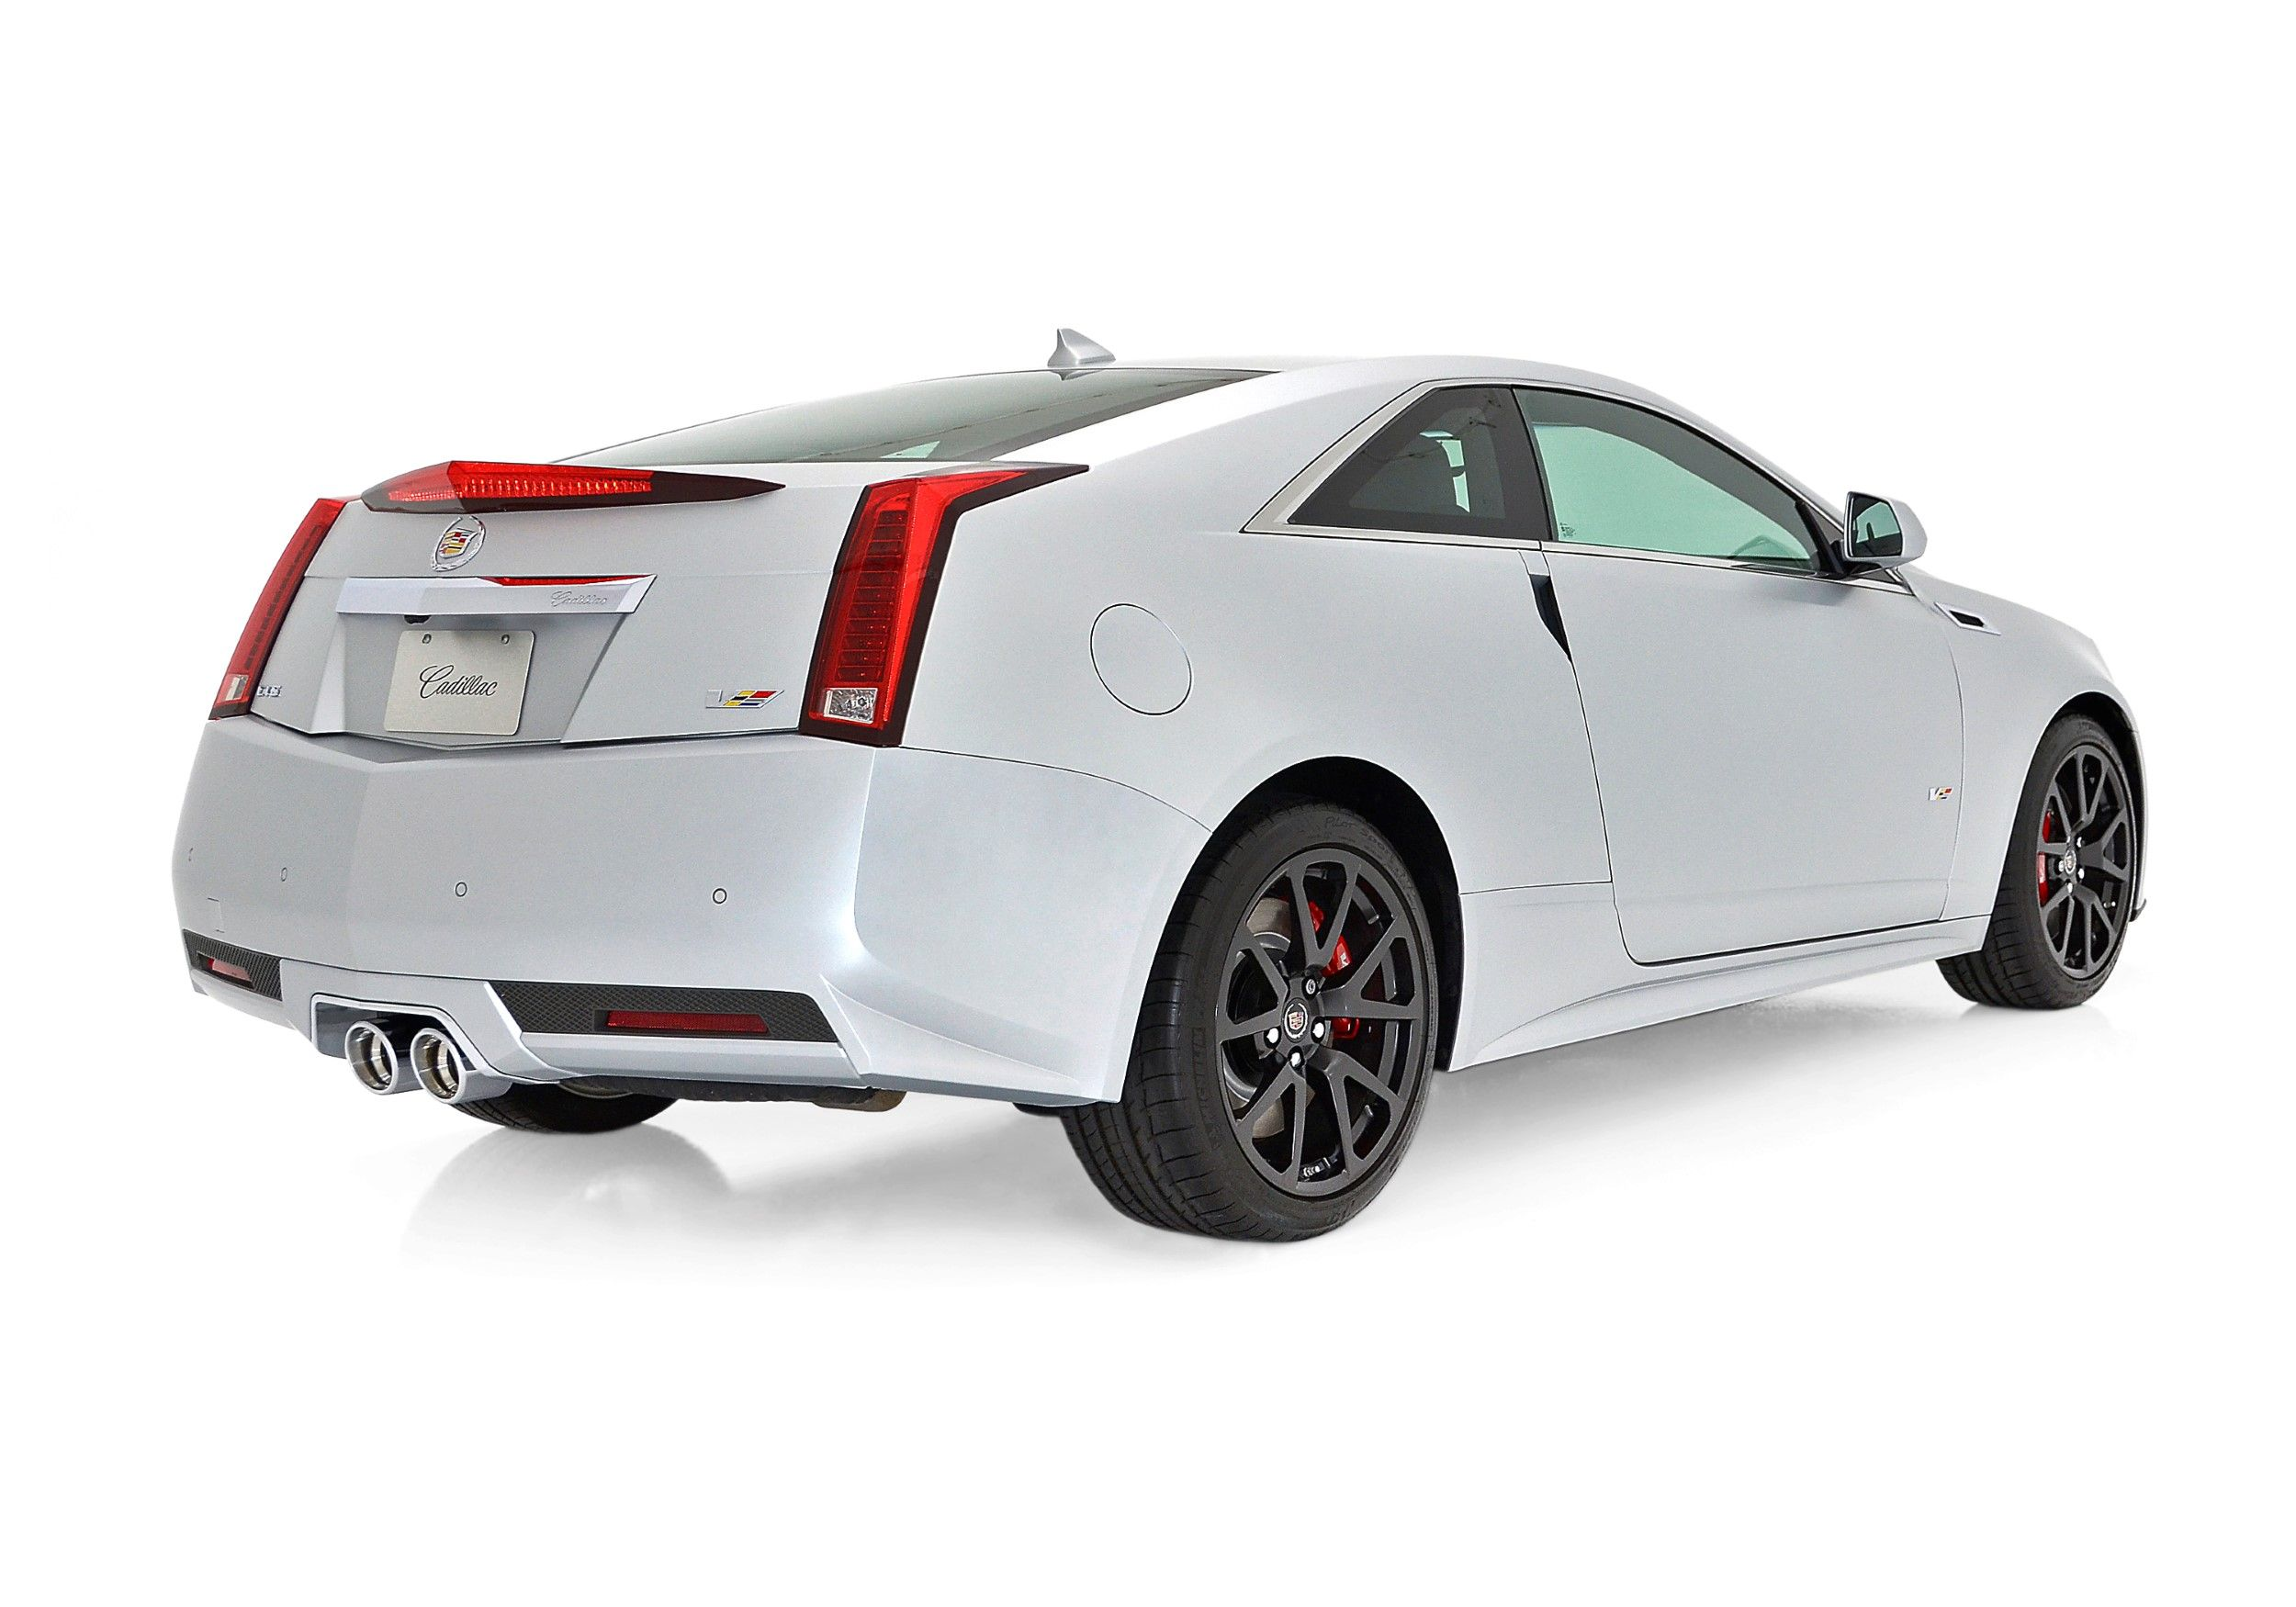 The cadillac cts v coupe debuted at the 2010 north american international auto show in detroit and went into production in the summer of 2010 as a 2011